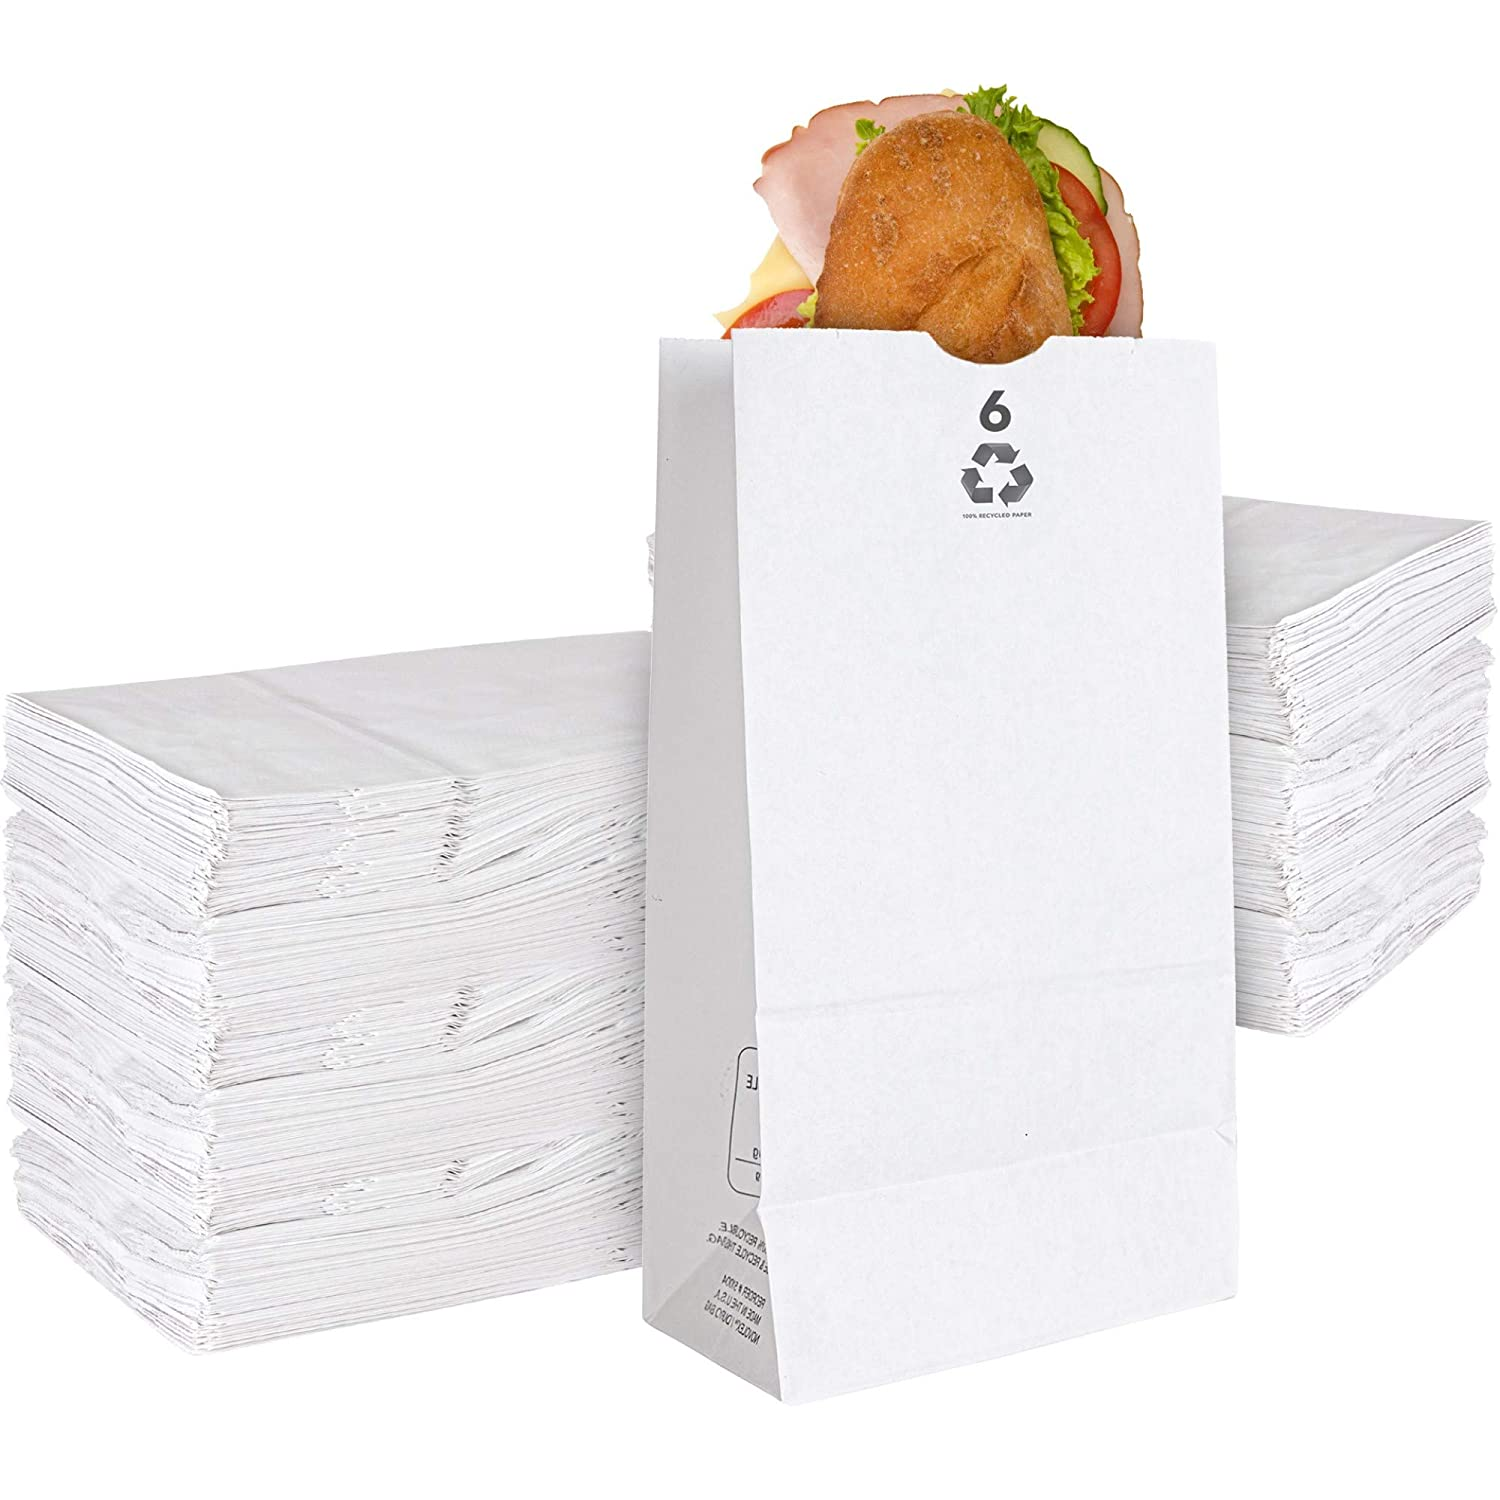 Stock Your Home 6 Lb White Paper Bags (200 Count) - Eco Friendly White Lunch Bags - Small White Paper Bags for Packing Lunch & Snacks - Blank White Lunch Bags Paper for Arts & Crafts Projects